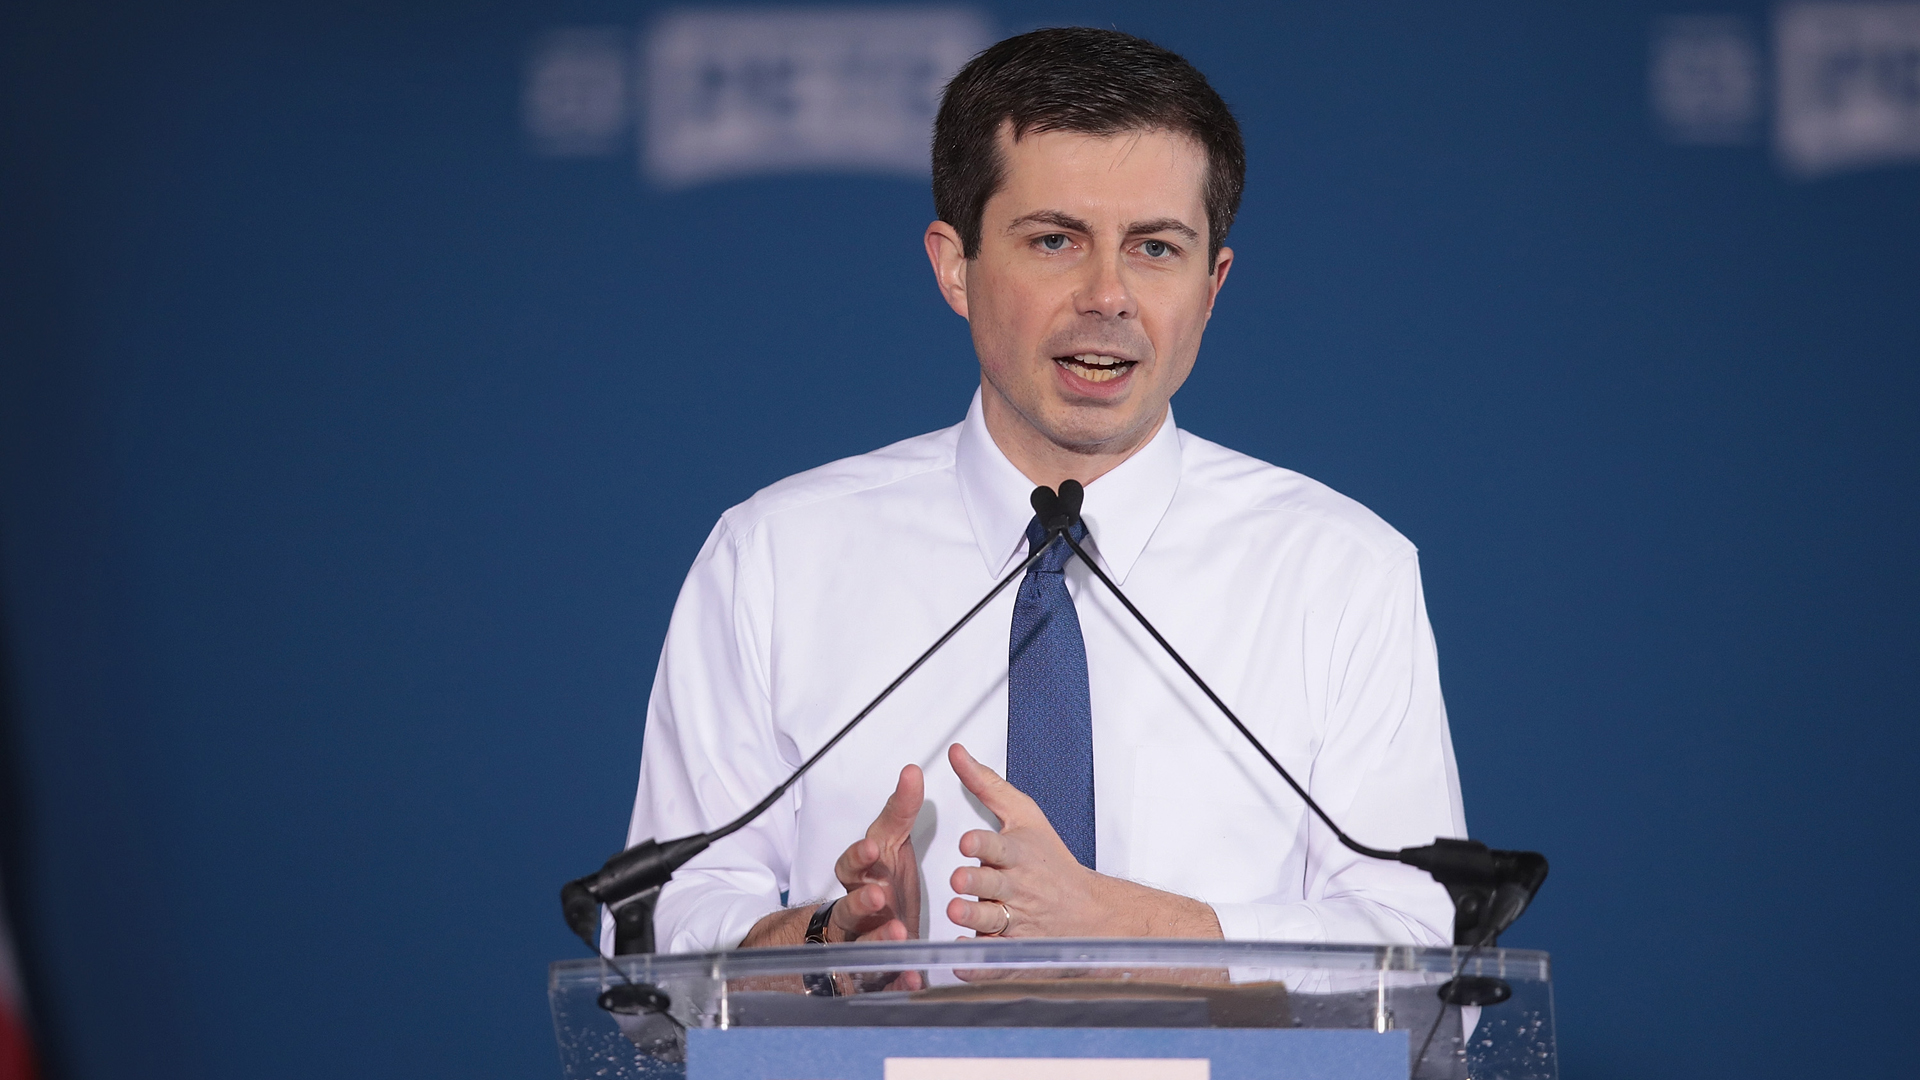 south bend mayor pete buttigieg 041419 getty_1556748255551-873702558